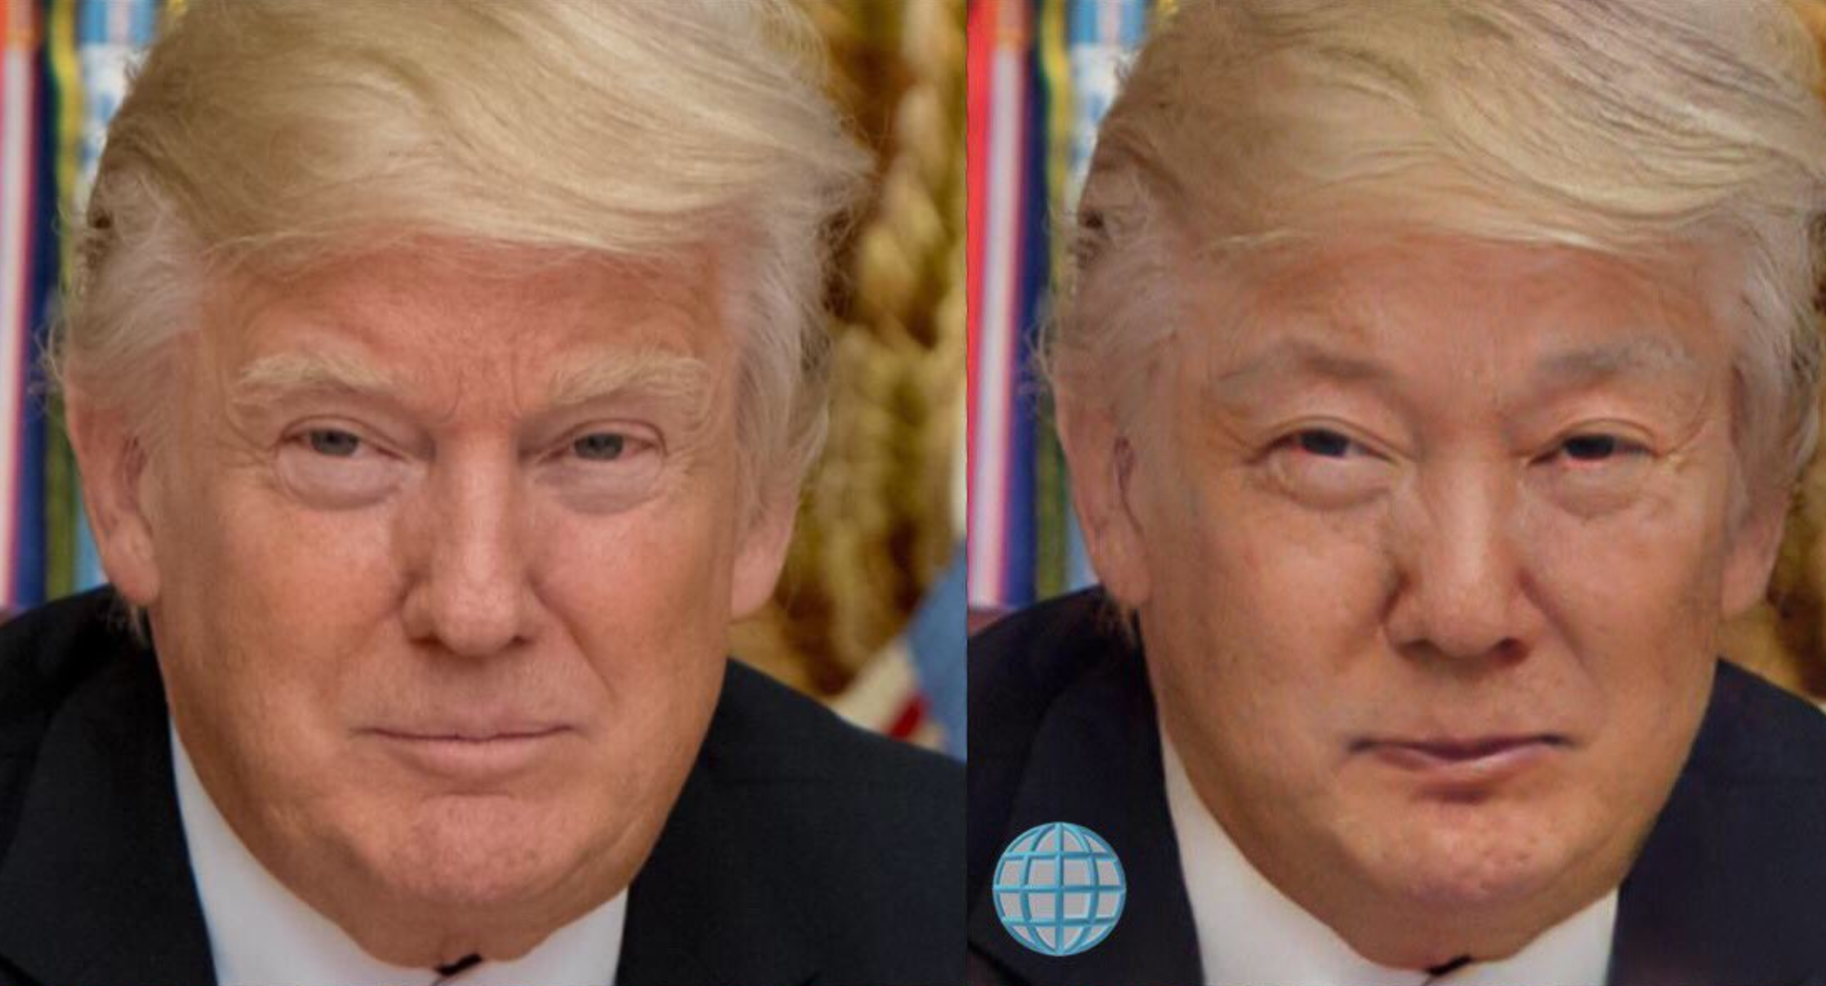 Update: FaceApp pulls ill-advised 'ethnicity filters' | TechCrunch